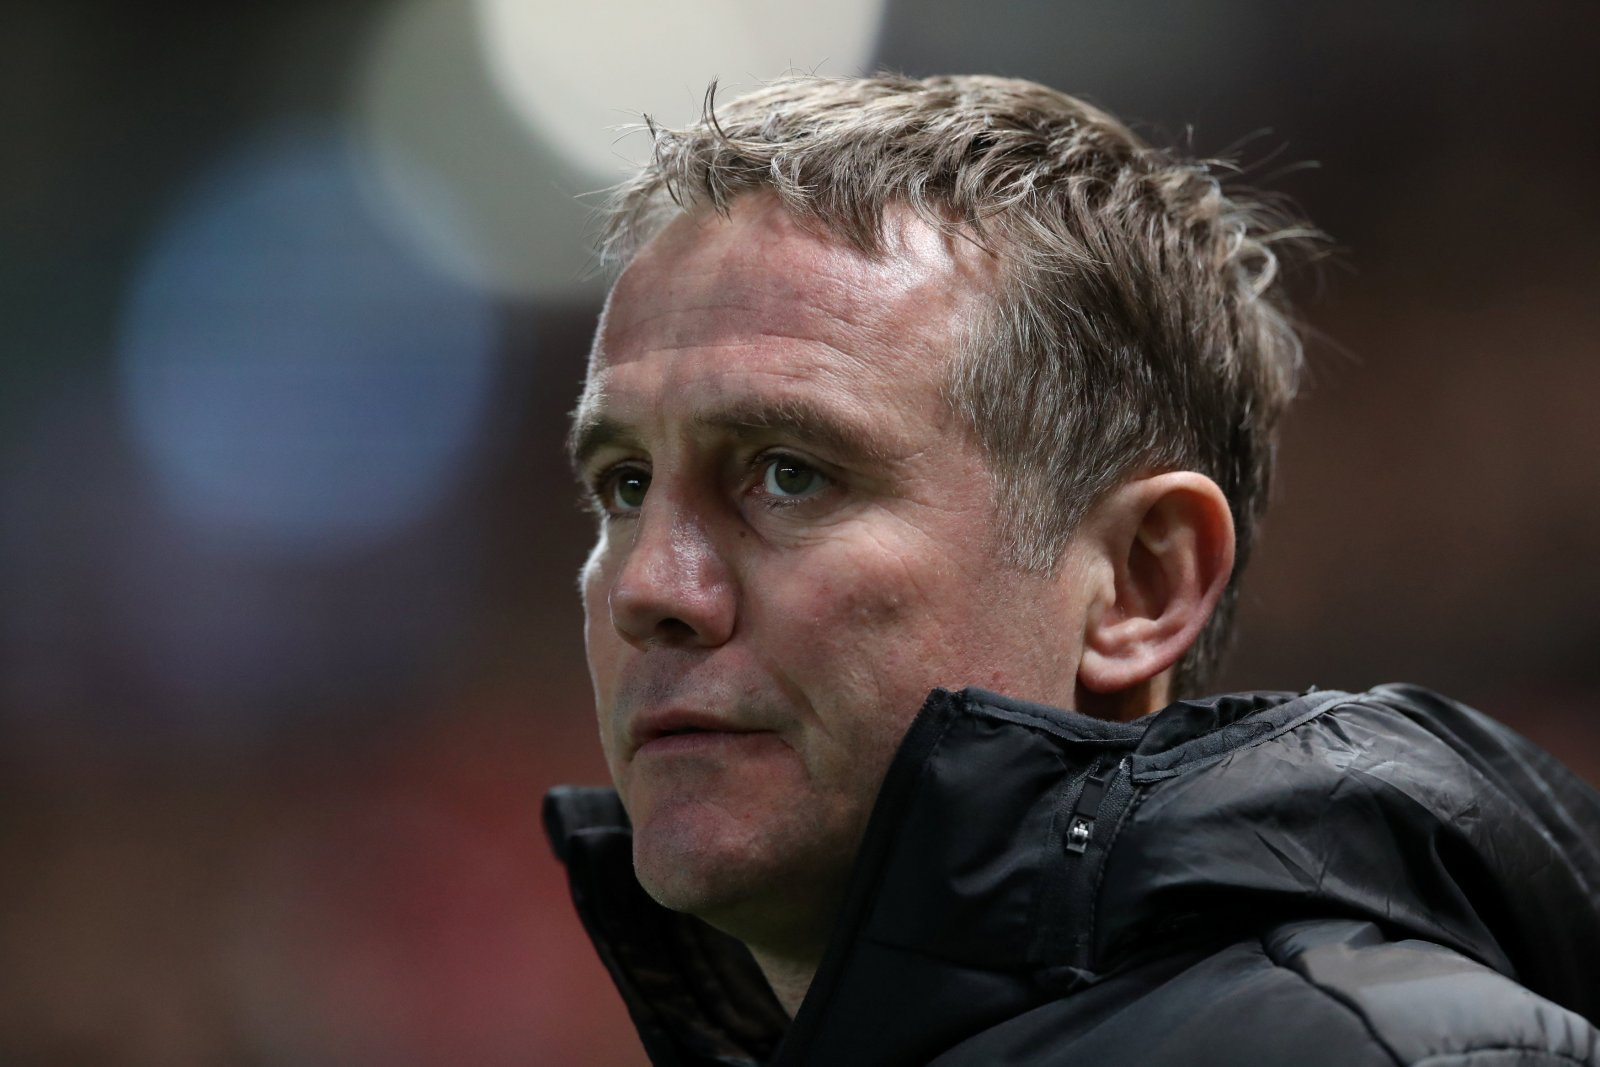 Sunderland: Many fans are unimpressed by the appointment of Phil Parkinson